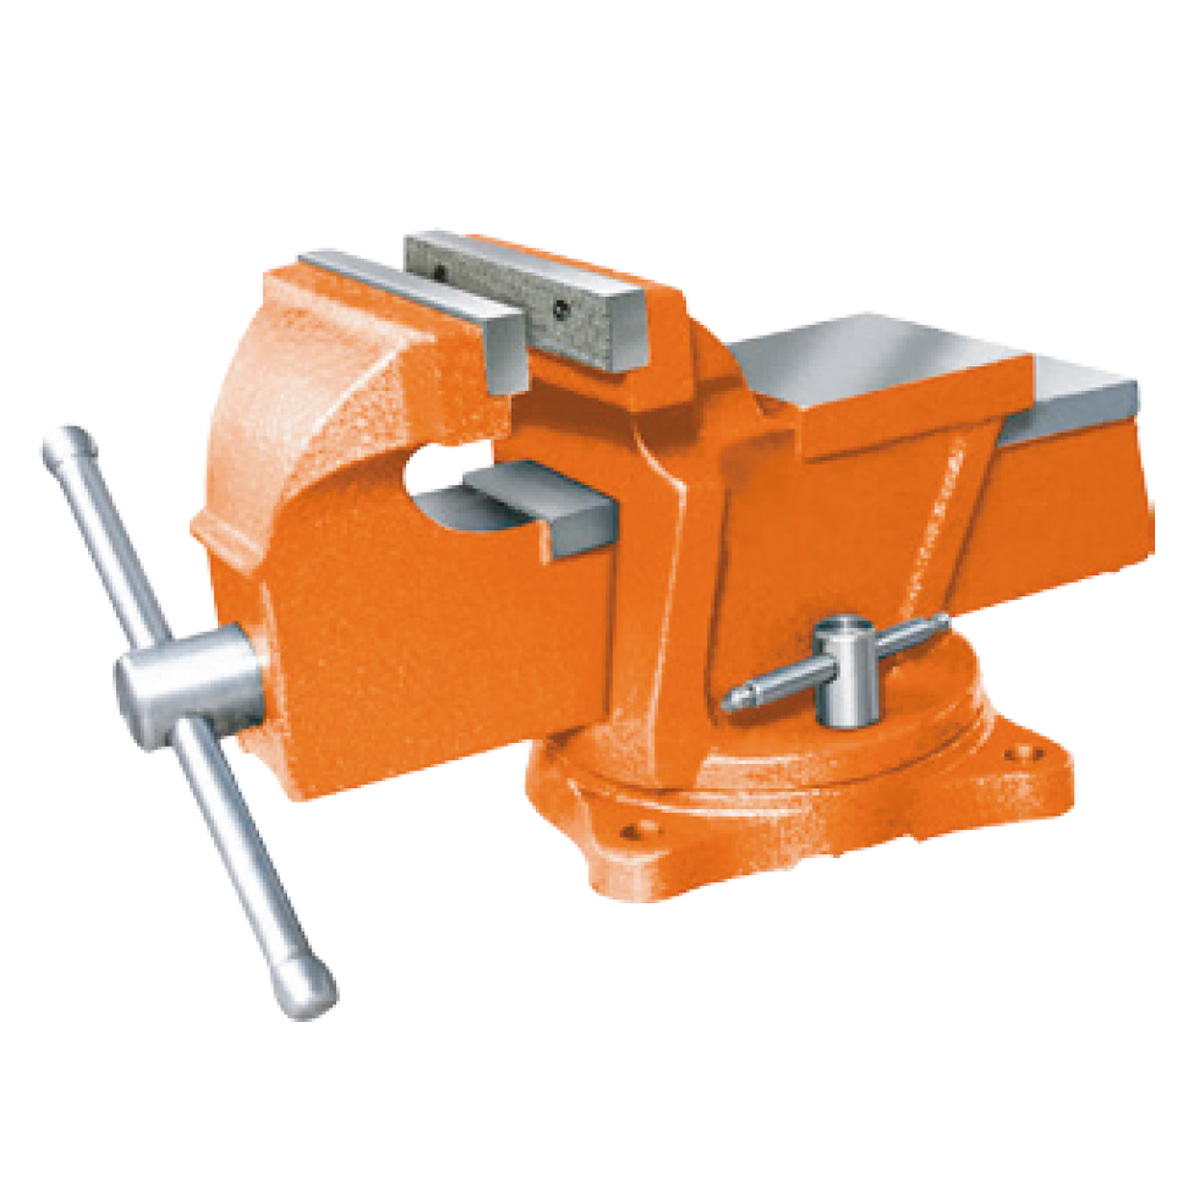 LIGHT DUTY BENCH VISE